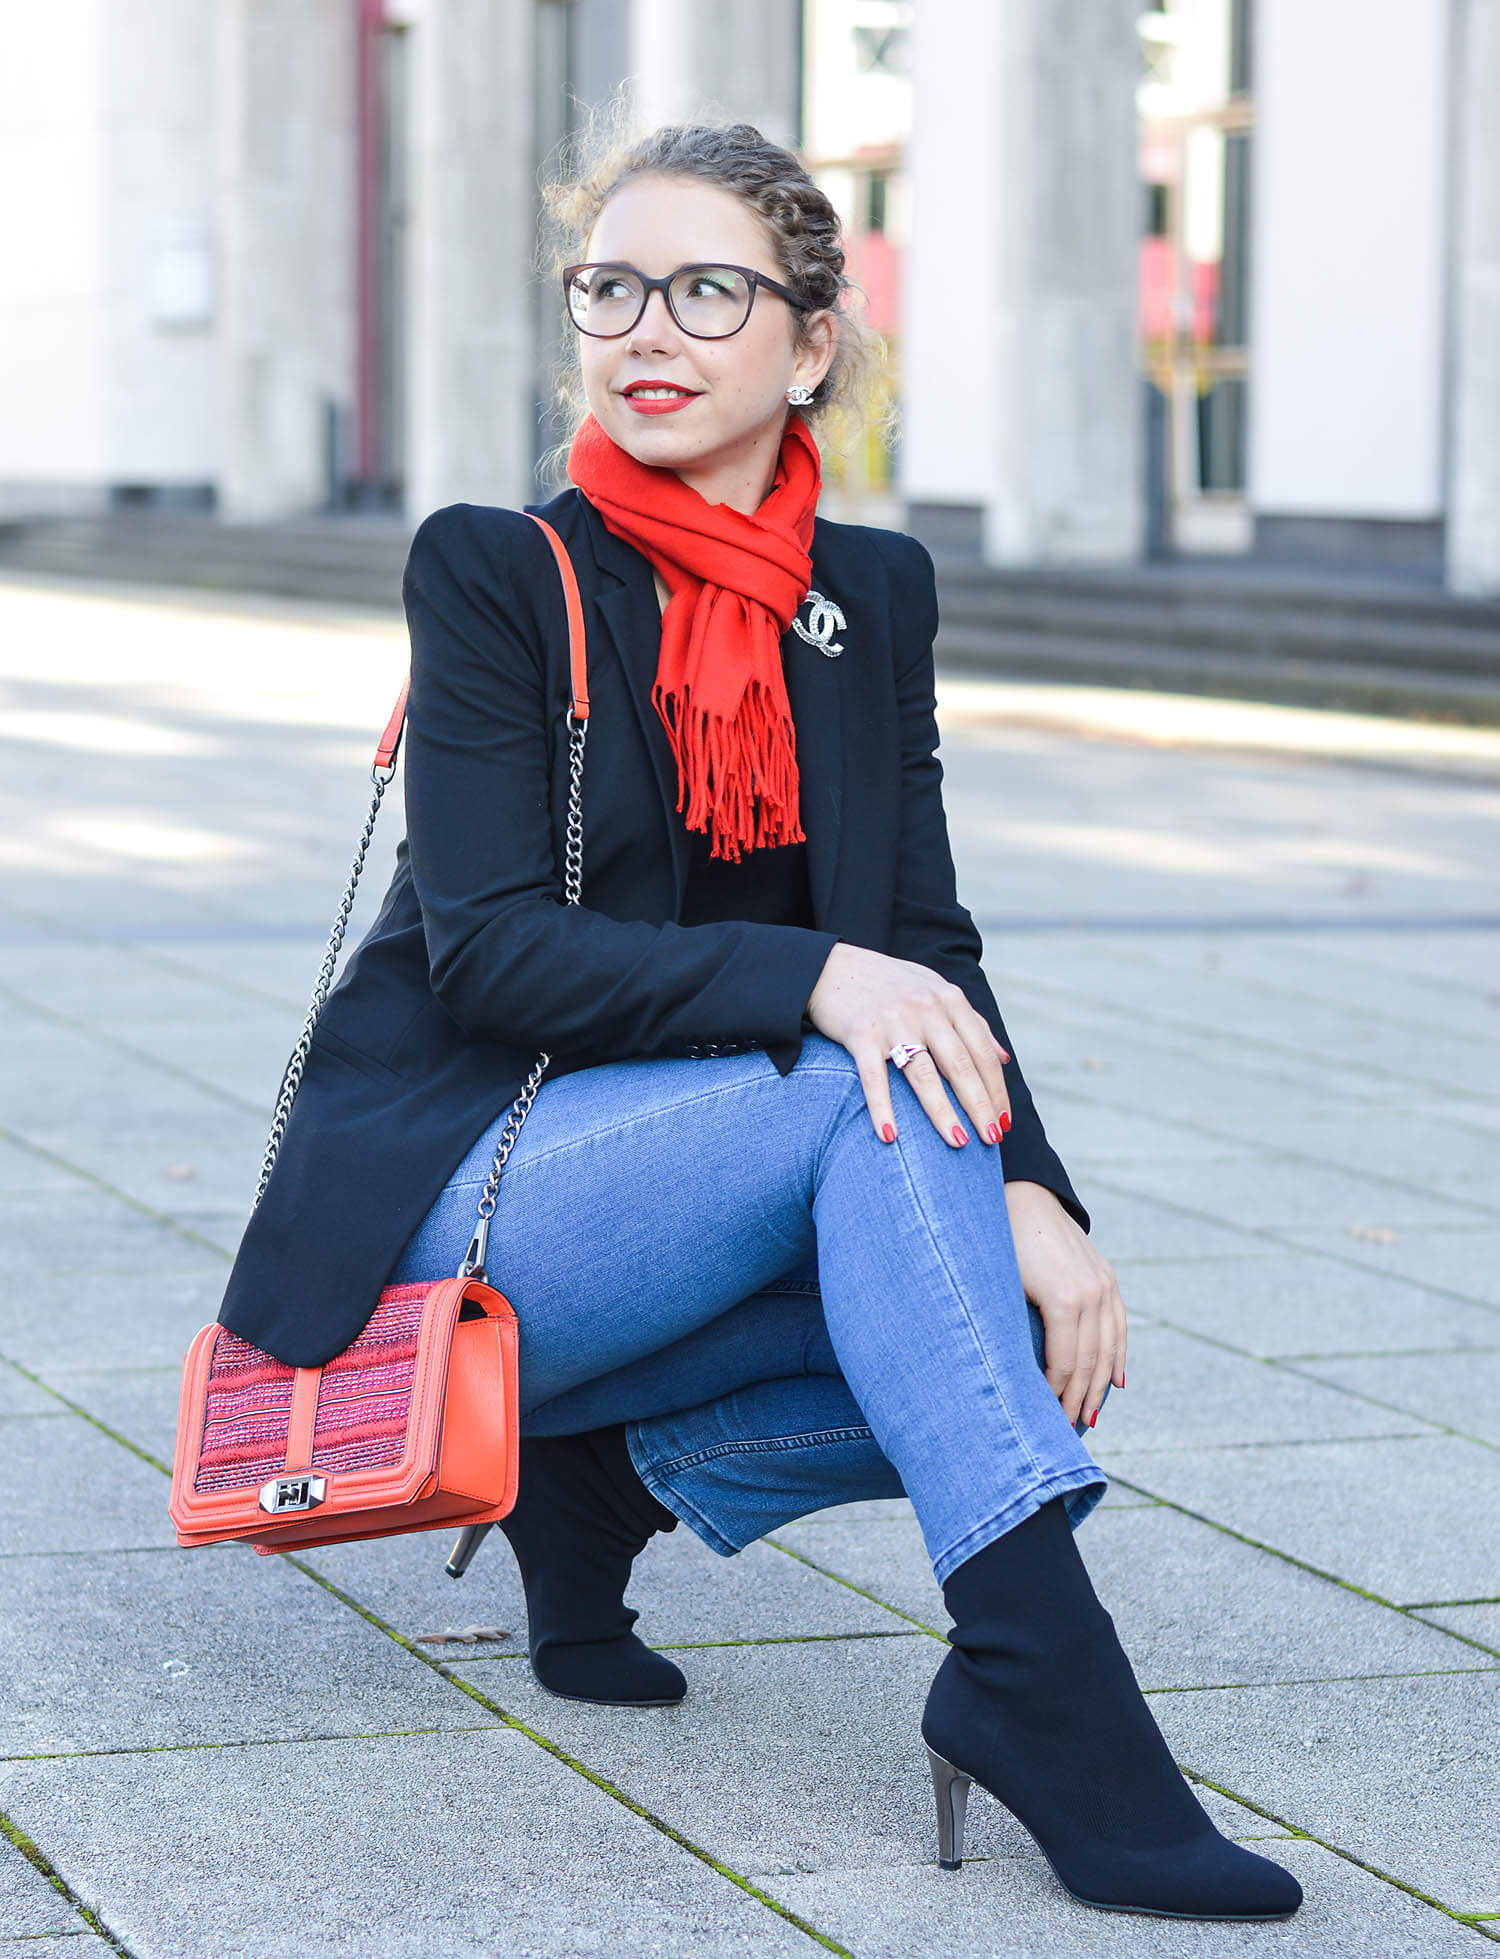 Kationette-fashionblogger-nrw-Outfit-Casual-Business-Style-with-Black-Blazer-Denim-Pants-Sock-Boots-and-Red-Accessoires